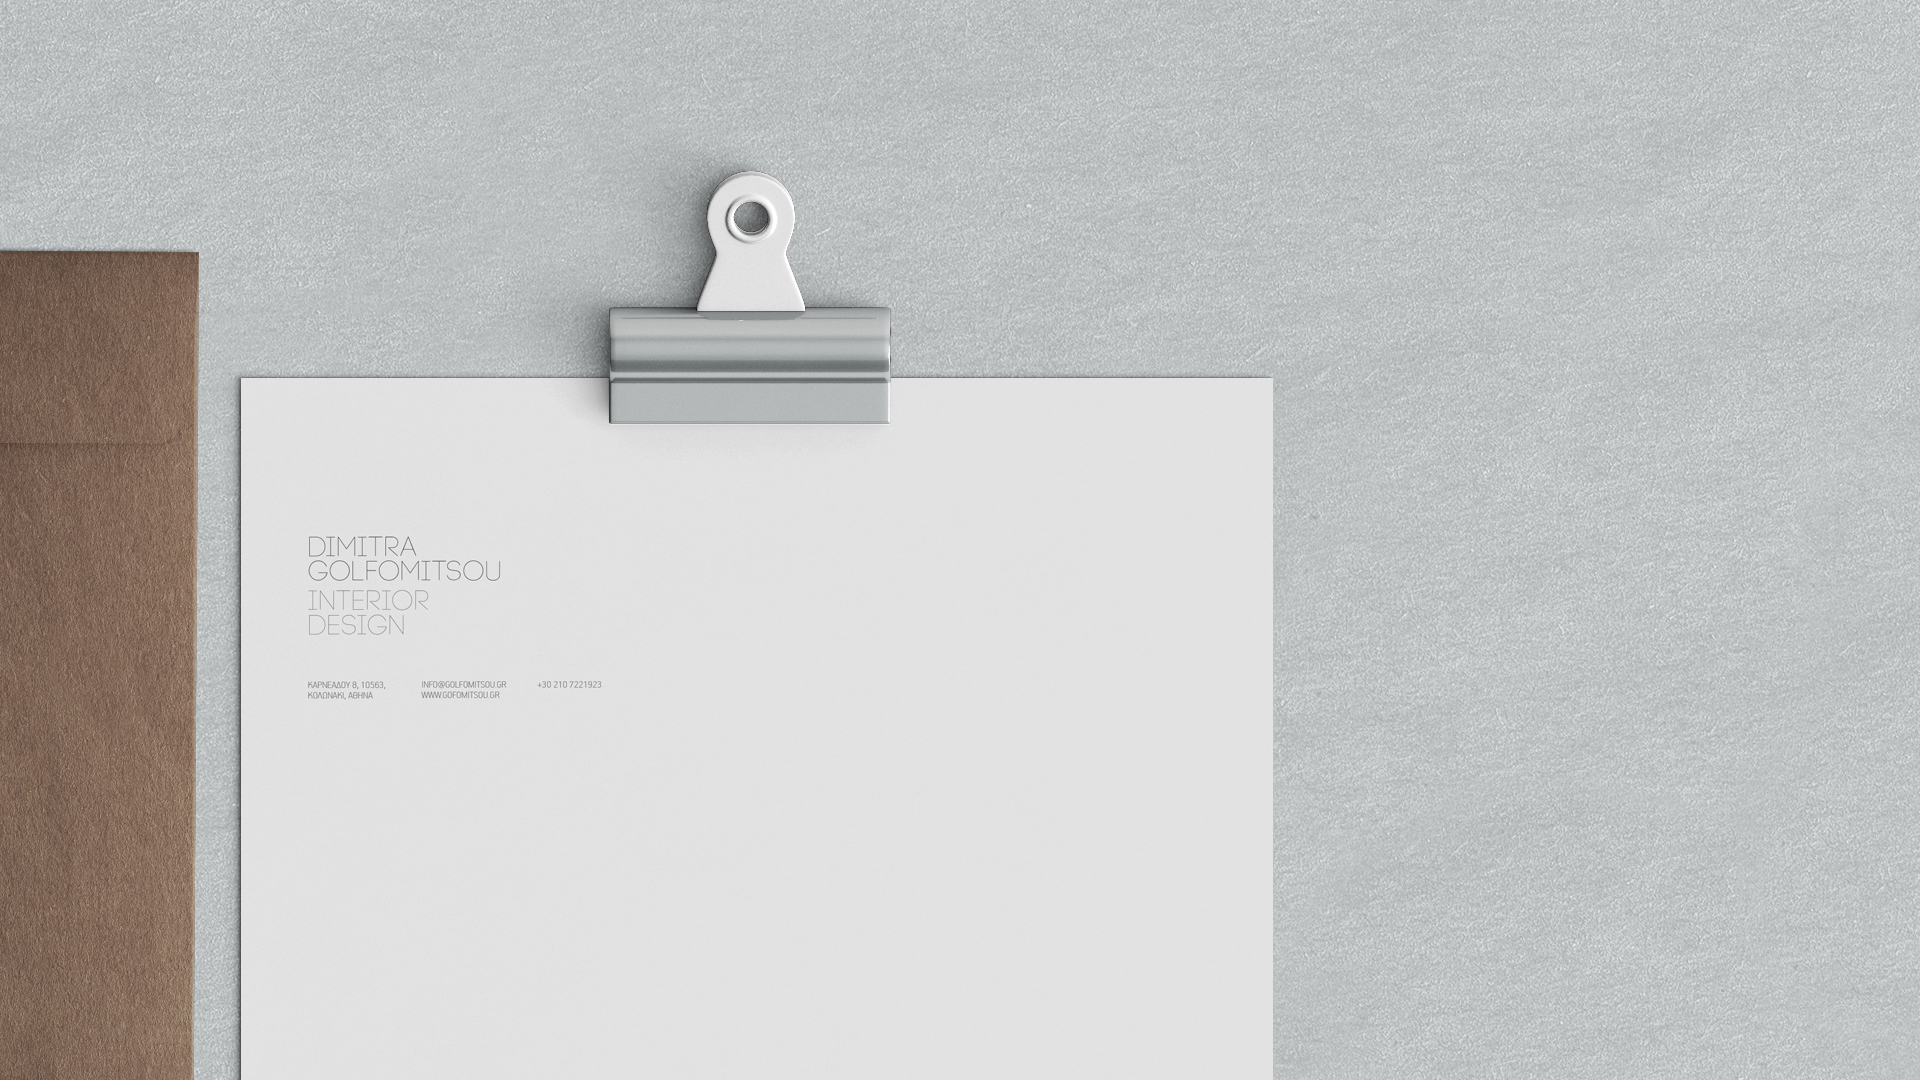 Letterhead_for_interior_designer